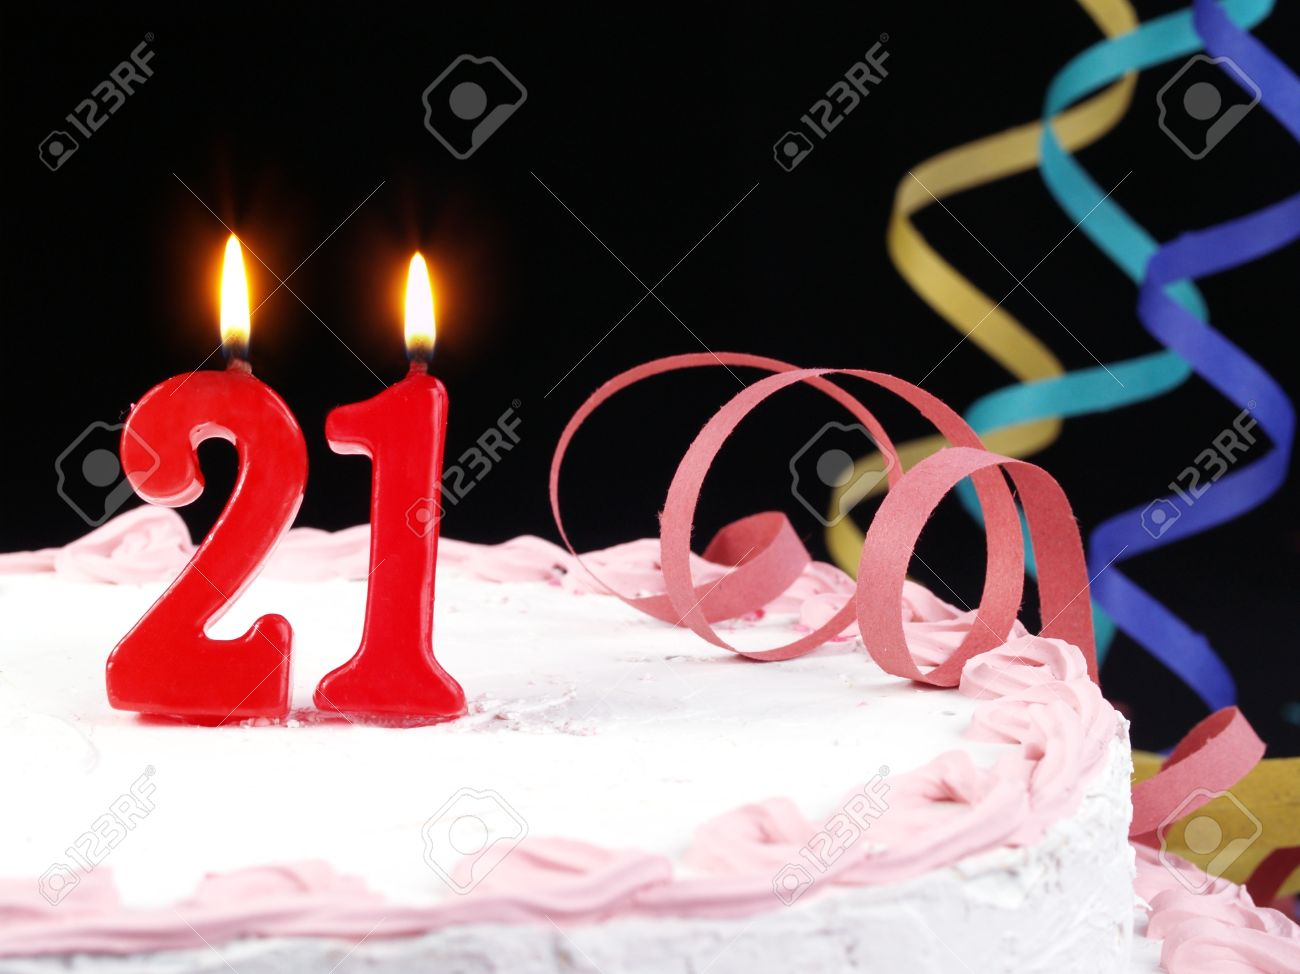 Birthday Cake With Red Candles Showing Nr 21 Stock Photo